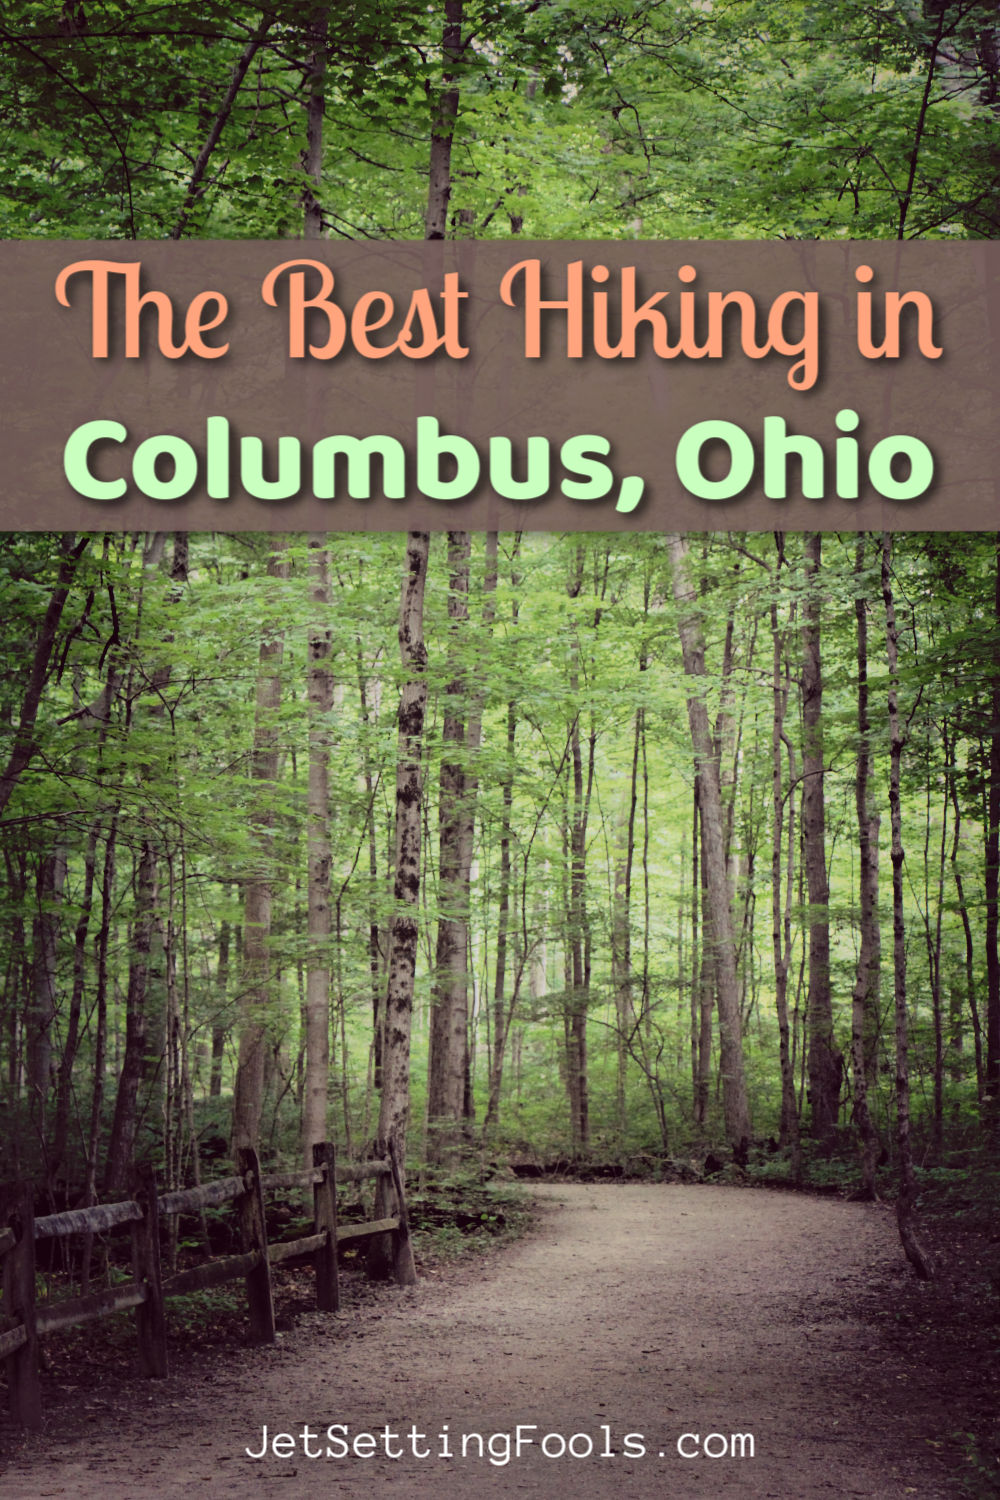 The Best Hiking in Columbus, Ohio by JetSettingFools.com